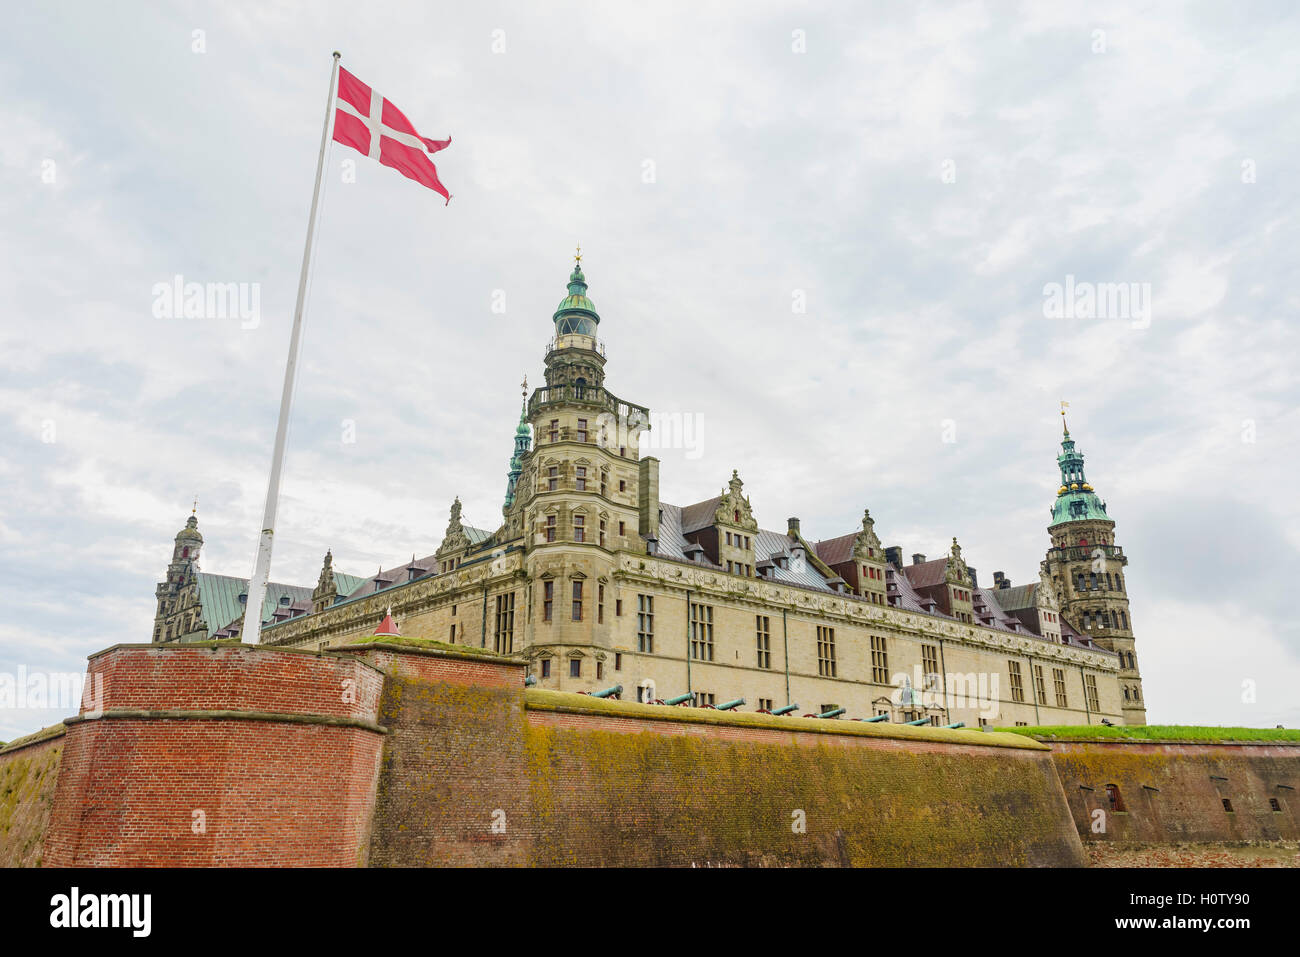 The historical Kronborg Castle at Helsingor, Denmark Stock Photo